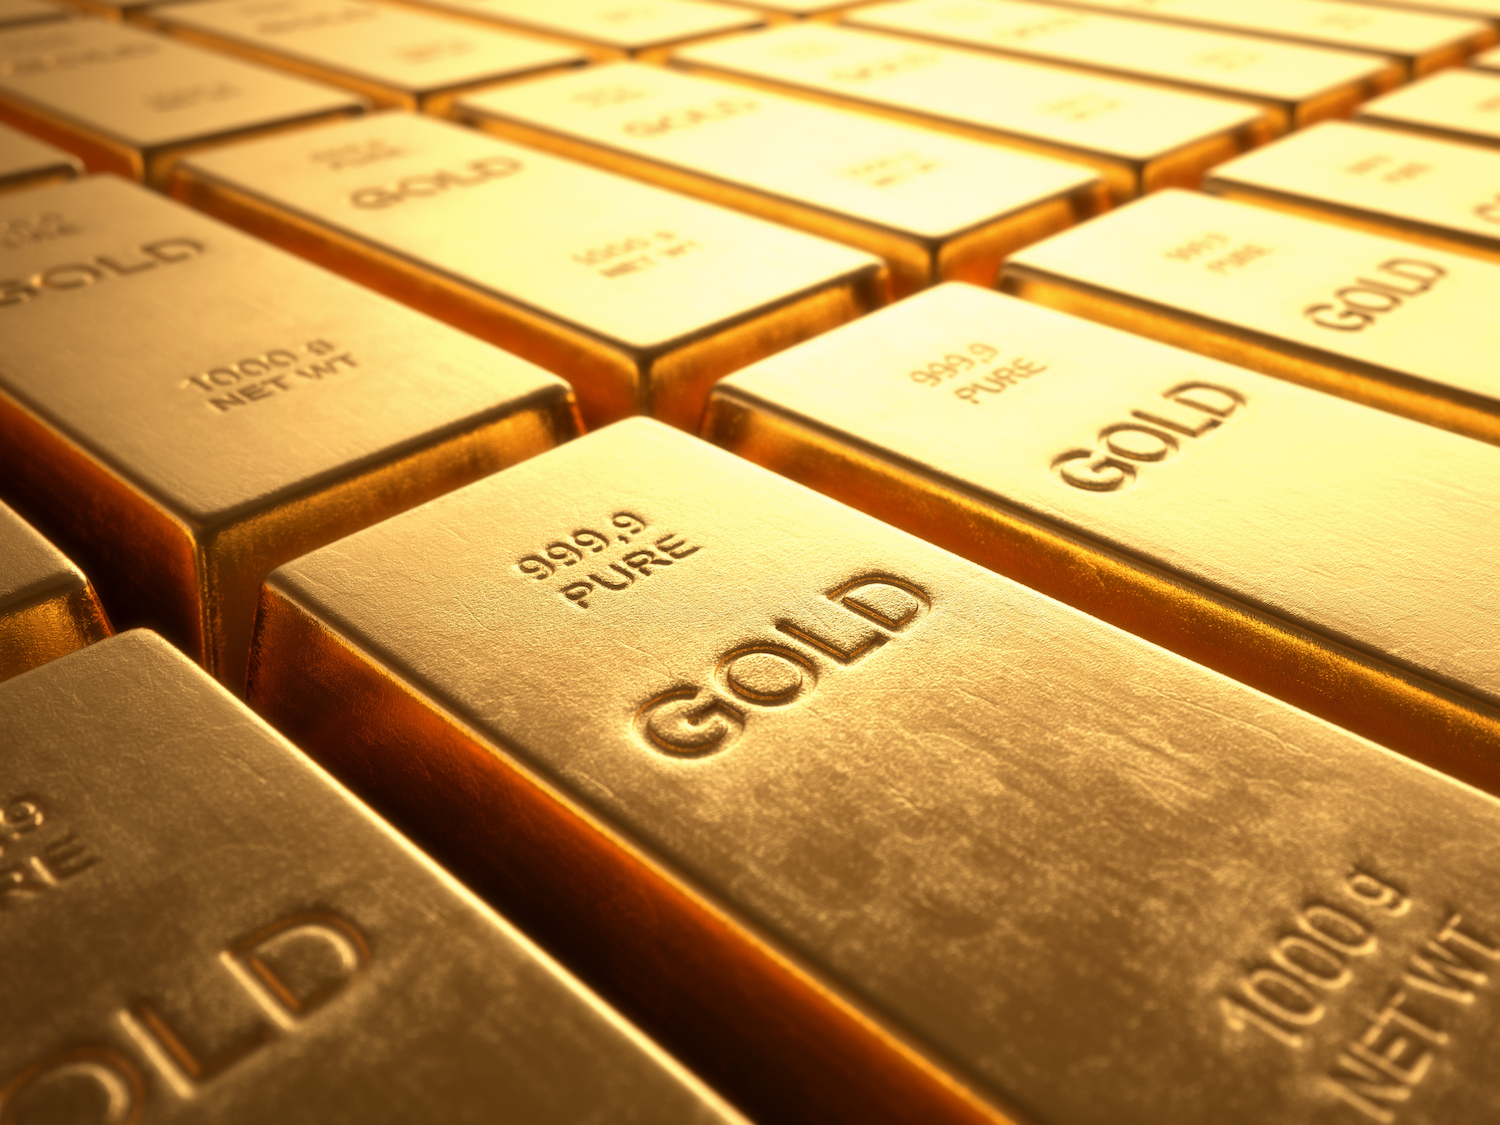 Global Precious Metals Retailer Kitco to Issue Gold-Backed Stablecoin